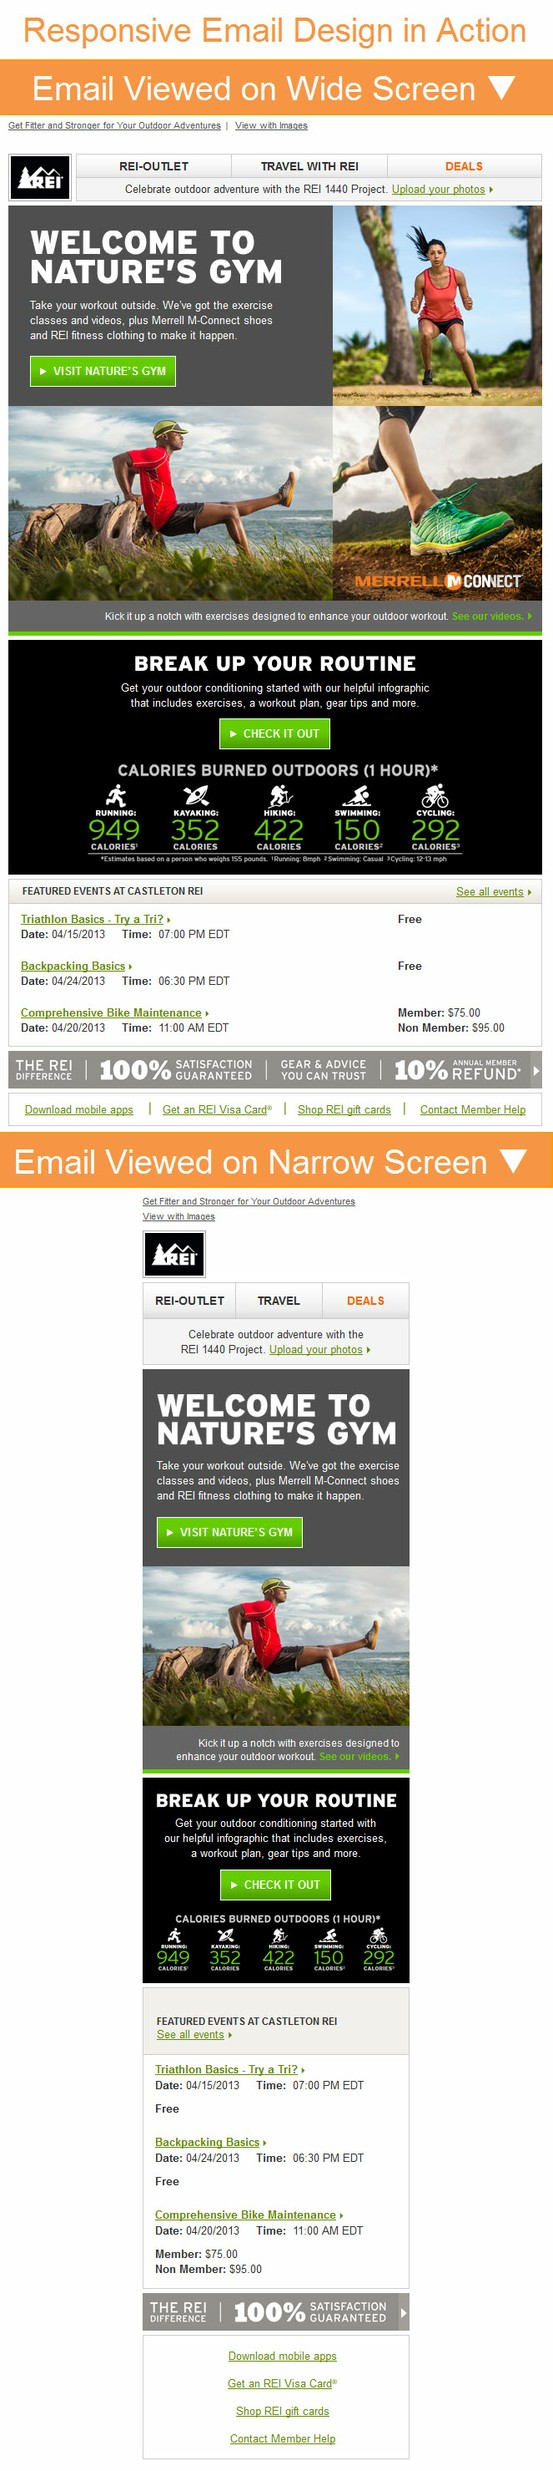 Another Great Example of responsive email design -   REI >>  sent 3/21/2013 >> This email for REI is a great example of responsive design when viewed on a mobile device. In this instance, you can see it in action if you drag the browser window to the left. - Laura Early, Associate Designer